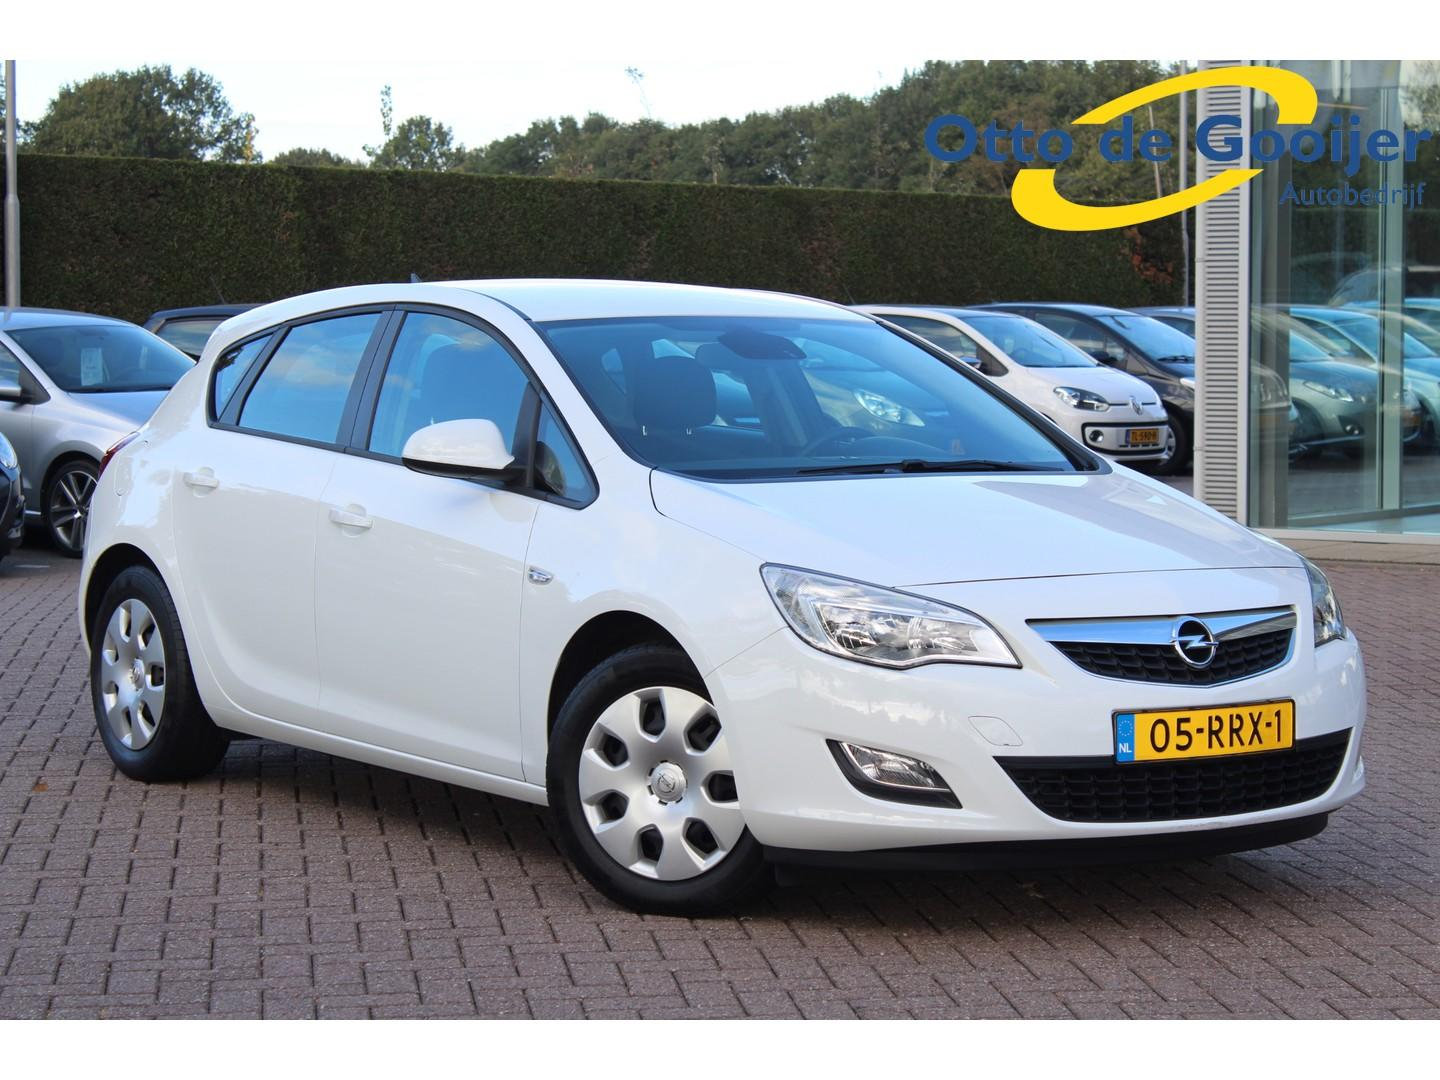 Opel Astra 1.3 cdti s/s edition 5drs / navigatie / pdc / airco / 148.852 km!